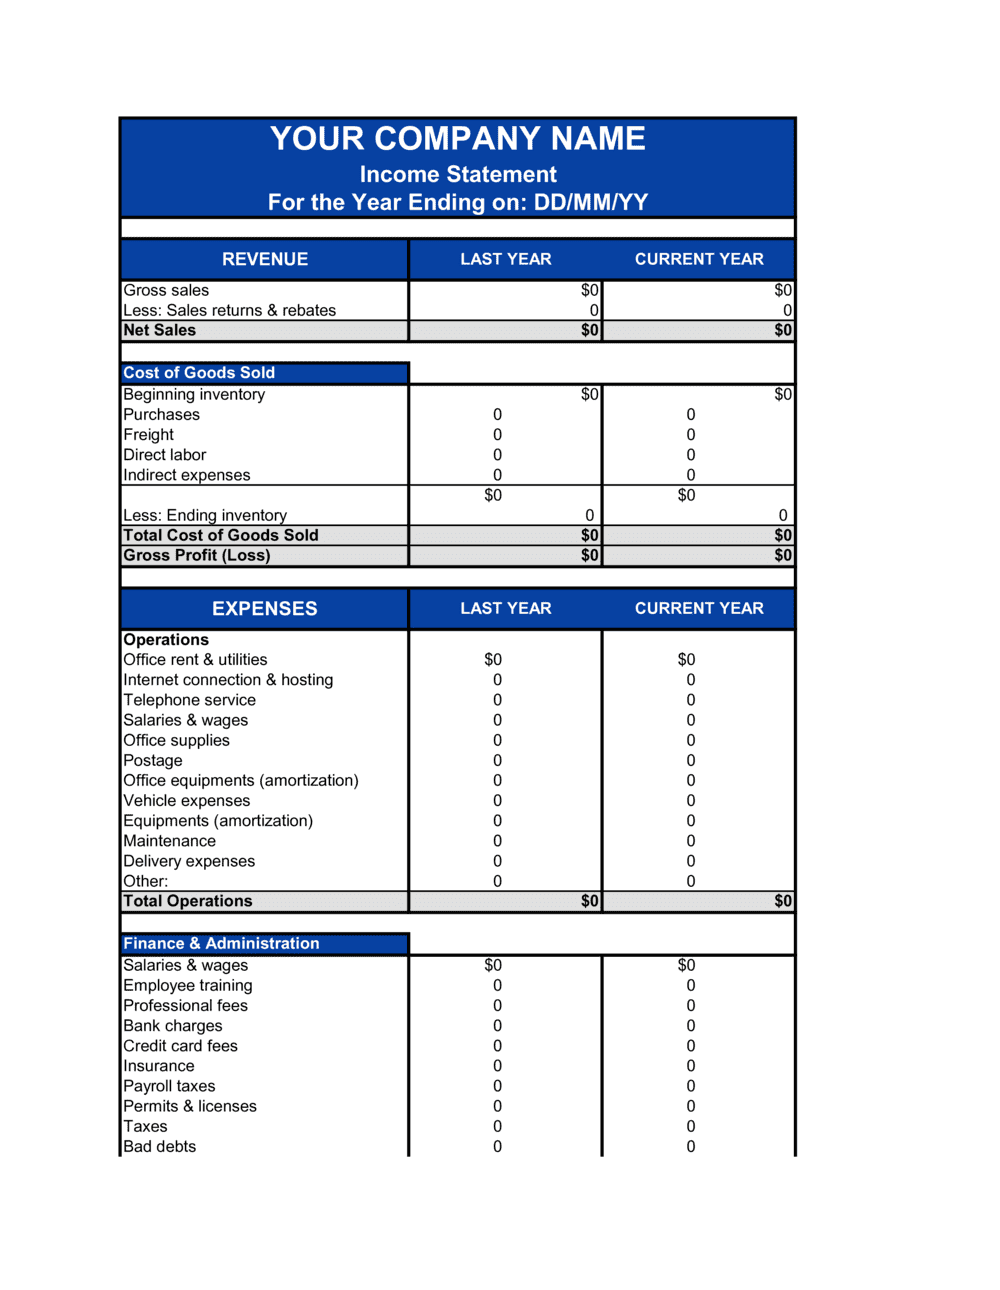 Download a free income statement template for excel and other financial statements. Income Statement Template By Business In A Box